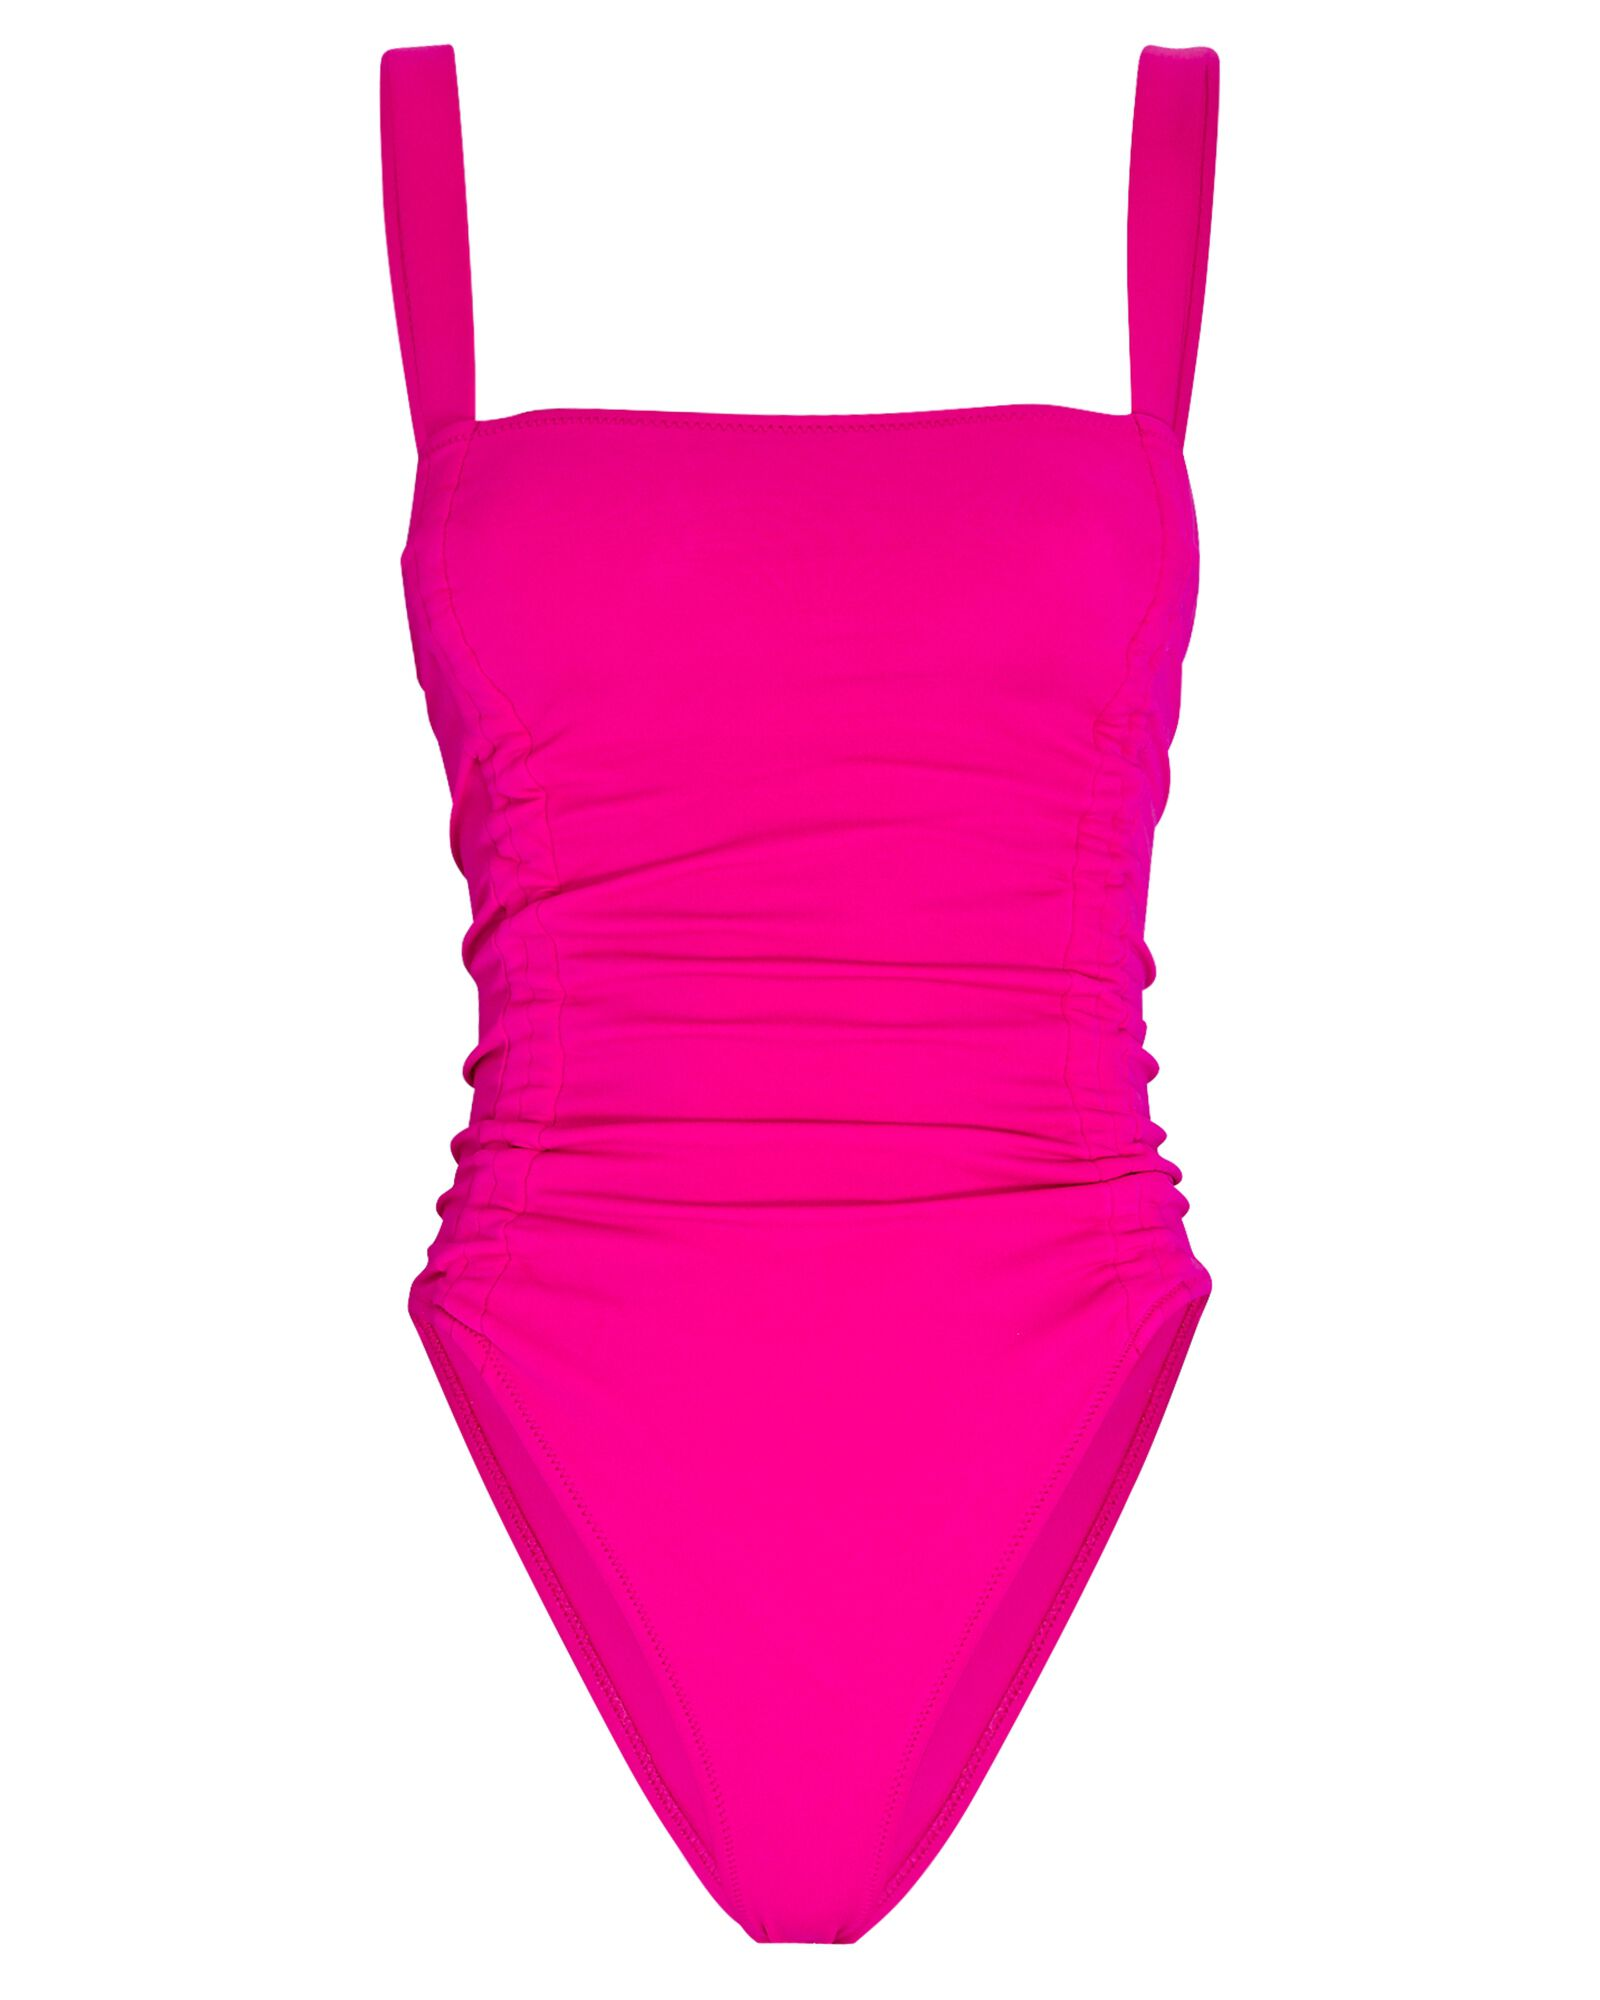 Alectrona One-Piece Swimsuit, PINK, hi-res